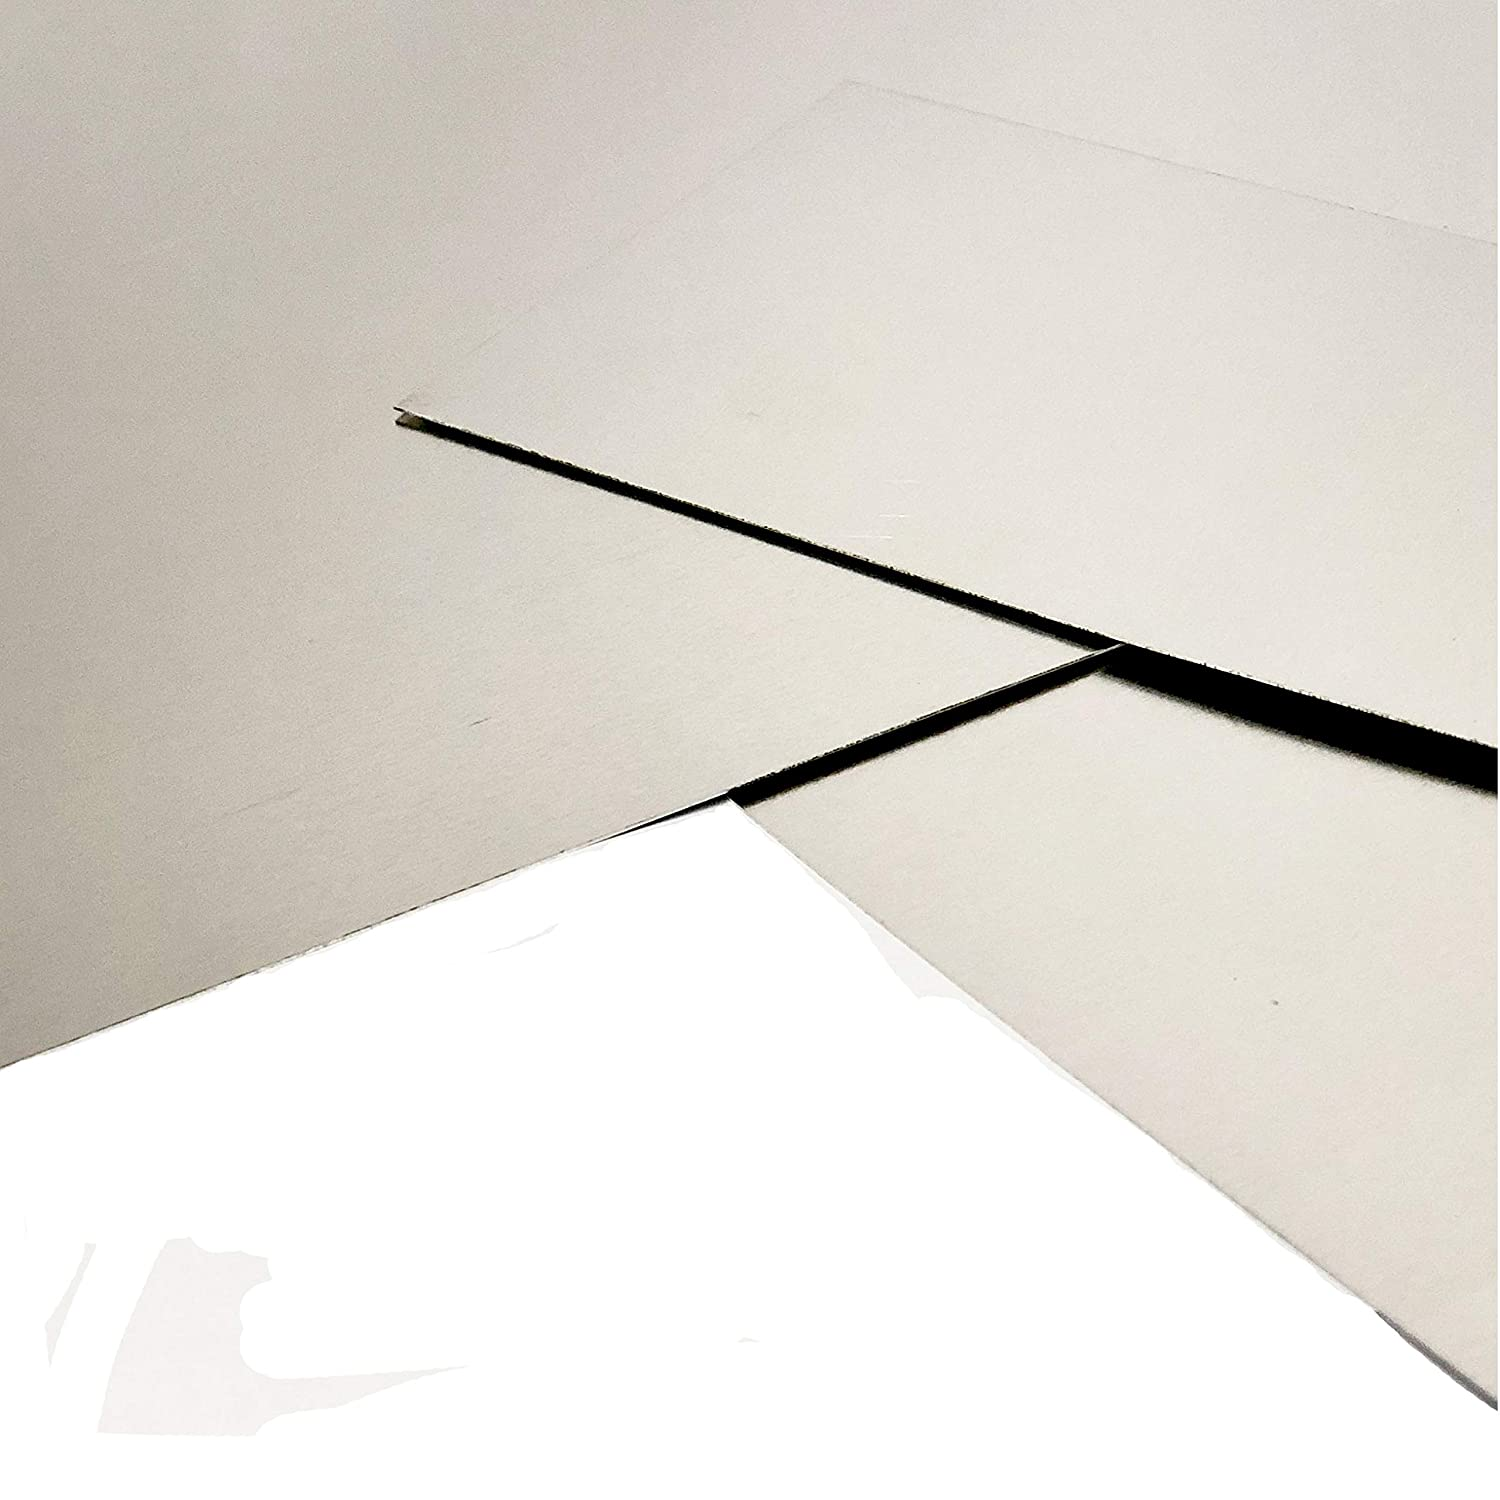 75 x 75mm Sheet 0.5mm Thick 304 Grade Stainless Steel Sheet Metal Plate Guillotine Cut With Protective Coat